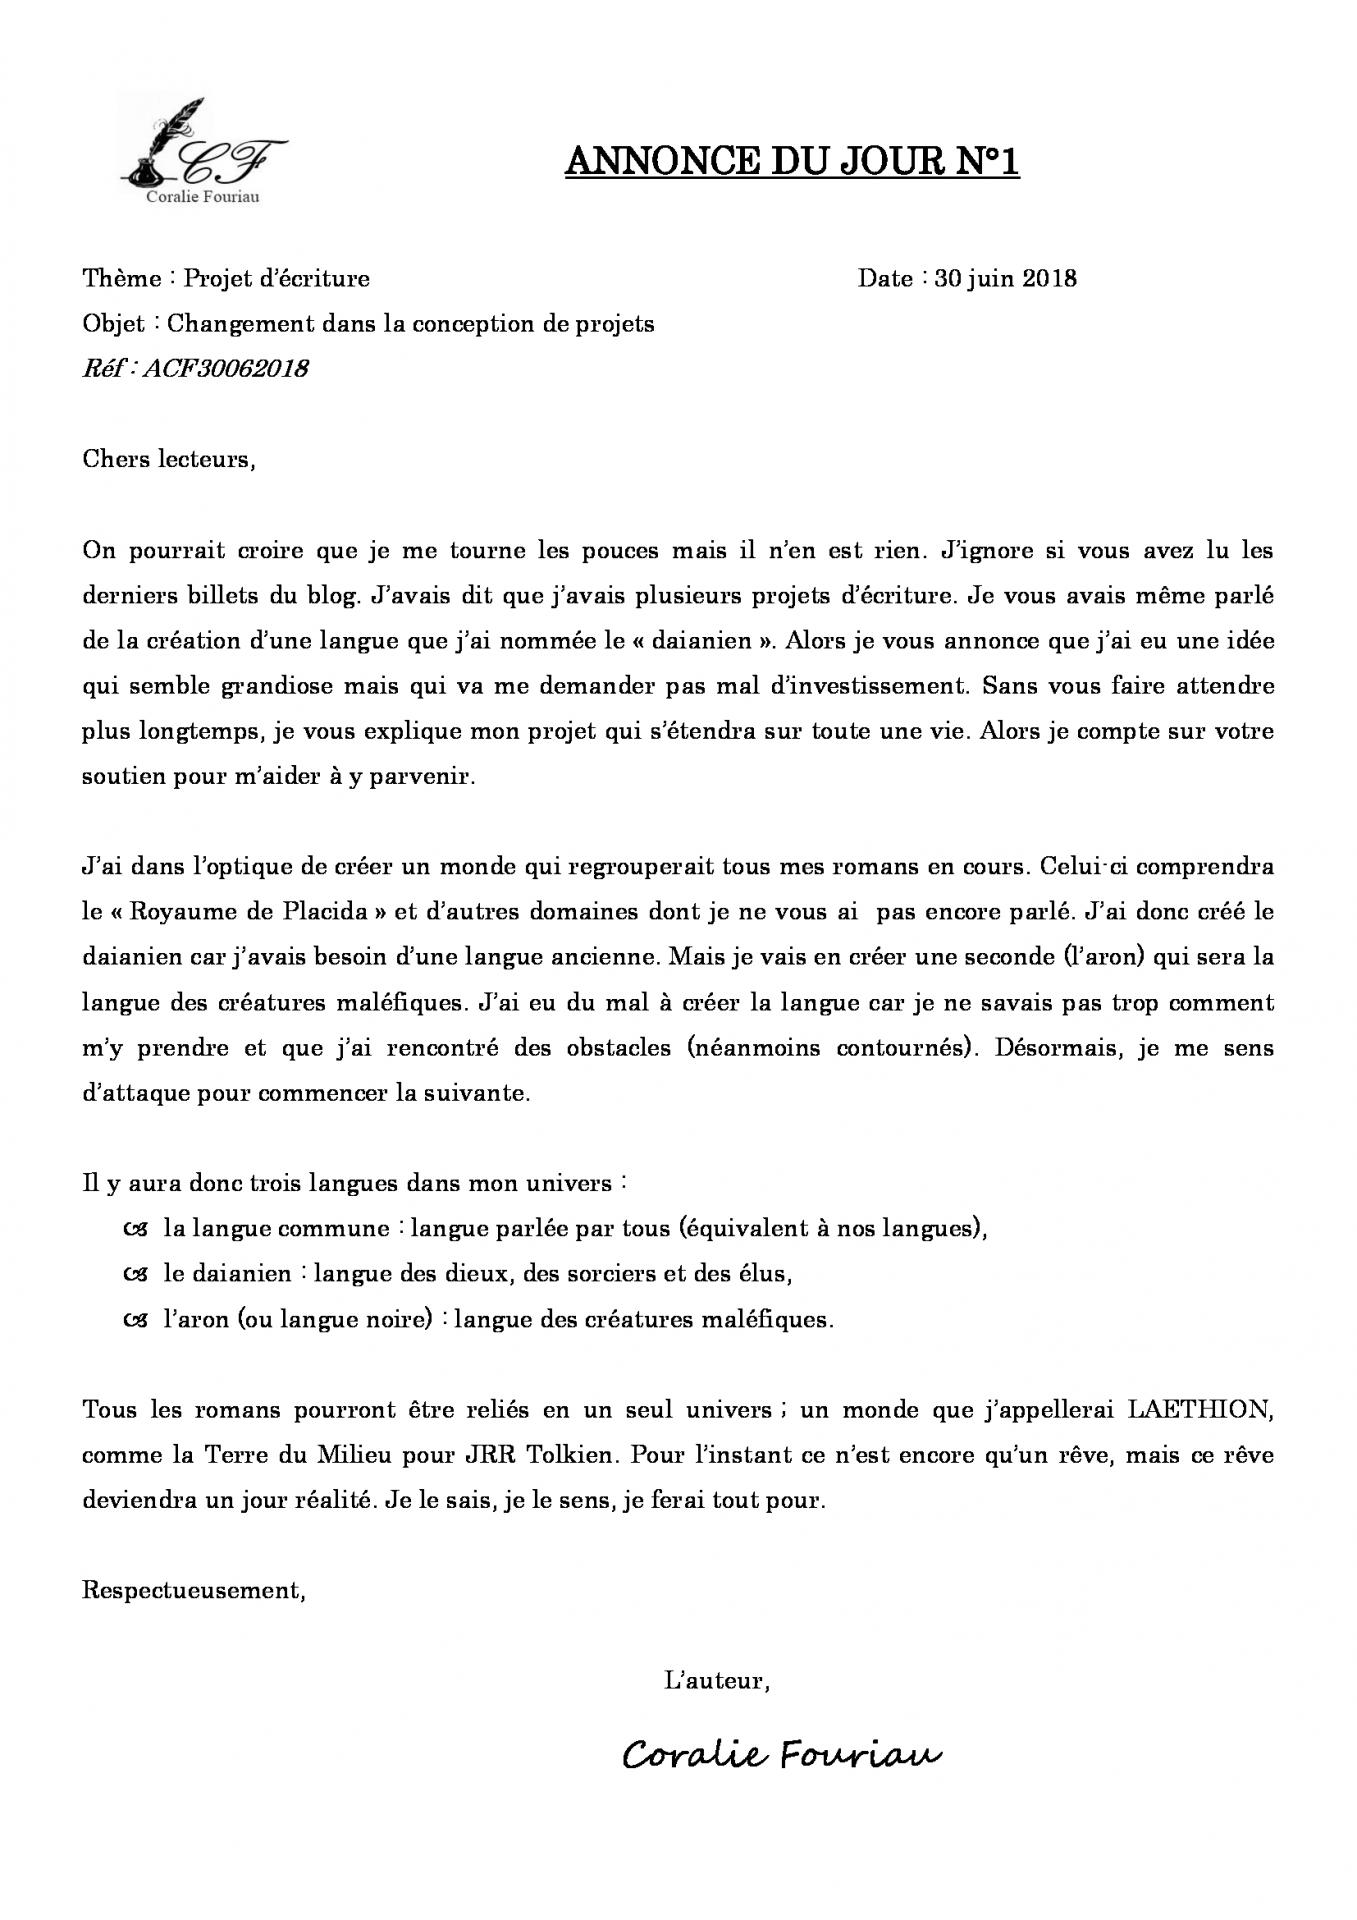 Annonce n 1 ref acf30062018 1